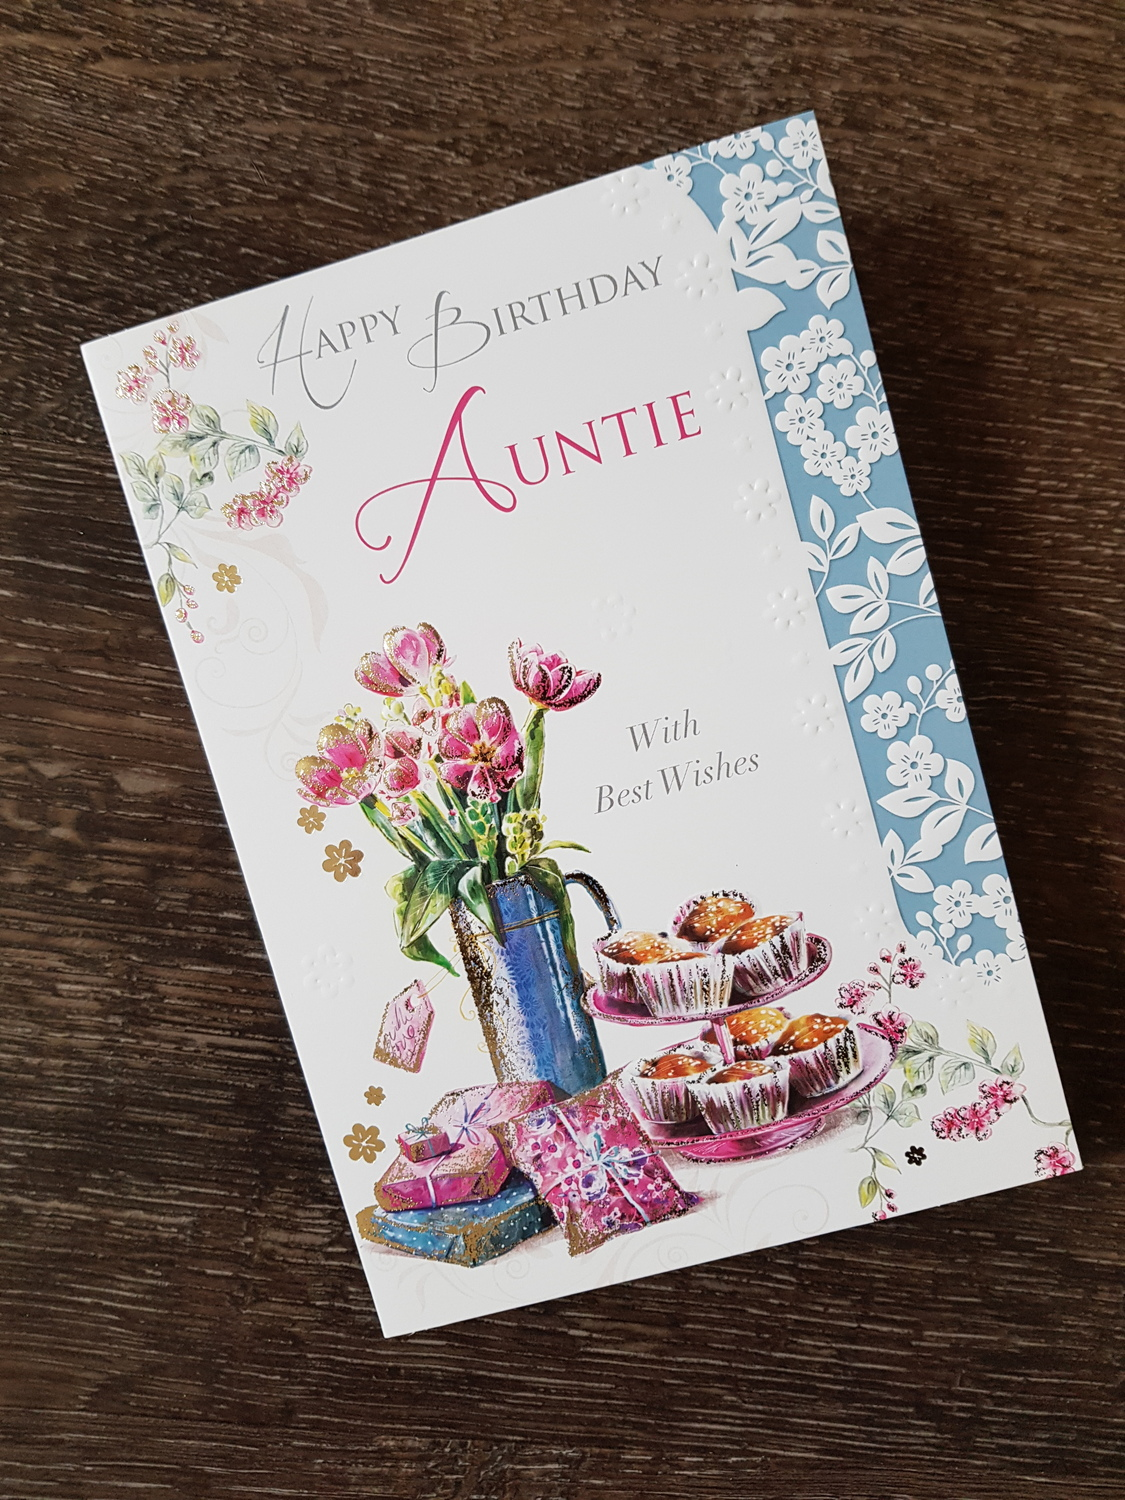 Auntie Flowers Presents Birthday Card Remember That Card